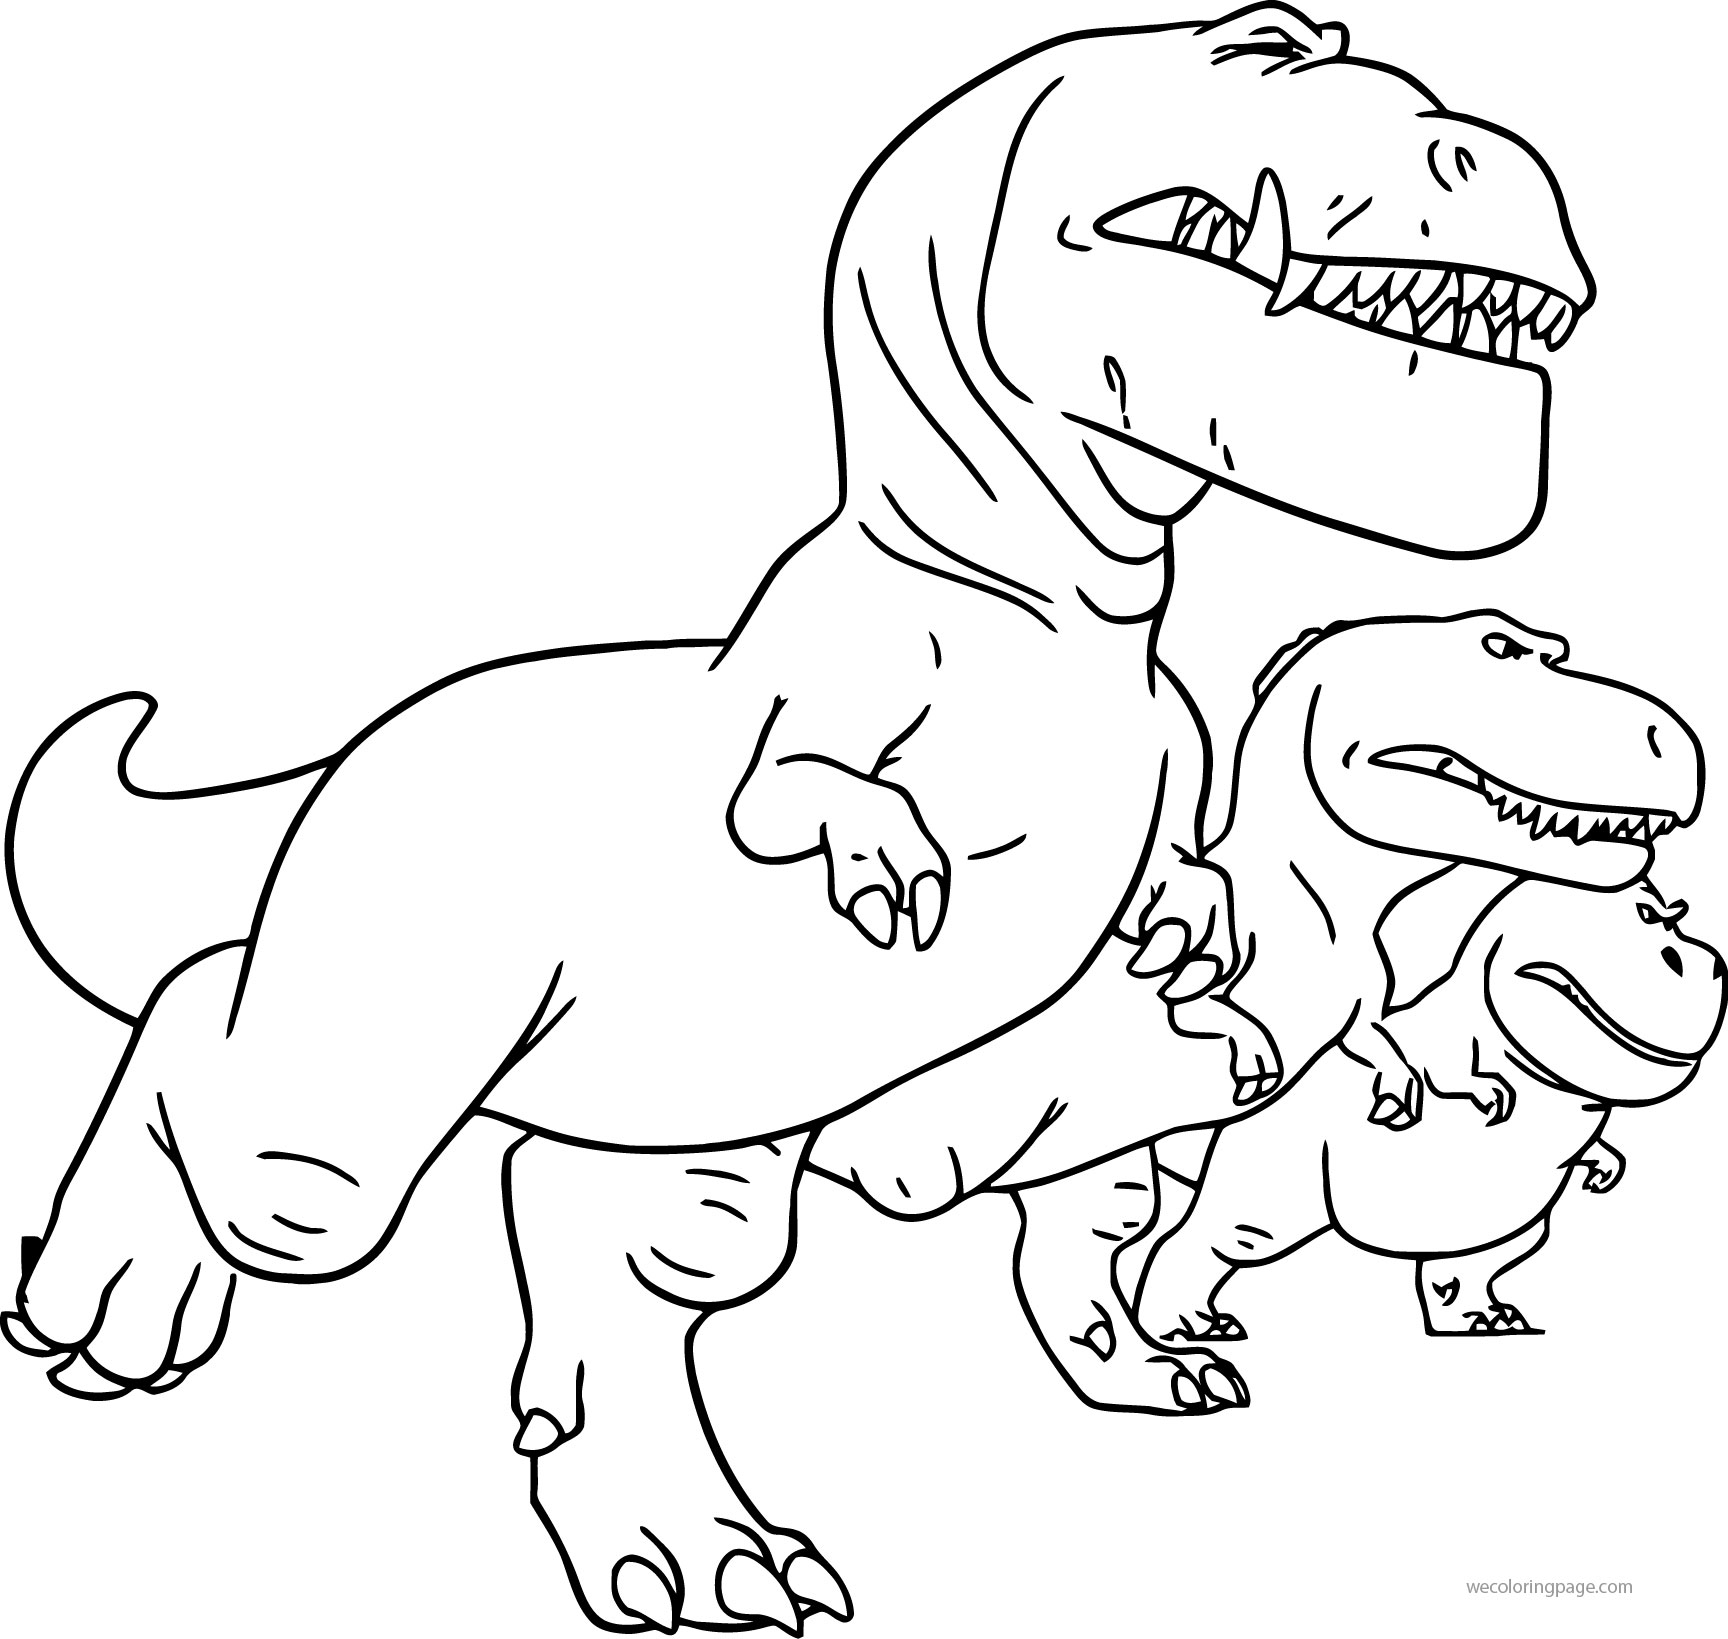 The Good Dinosaur Disney Nash Ramsey Butch Attack Cartoon Coloring Pages